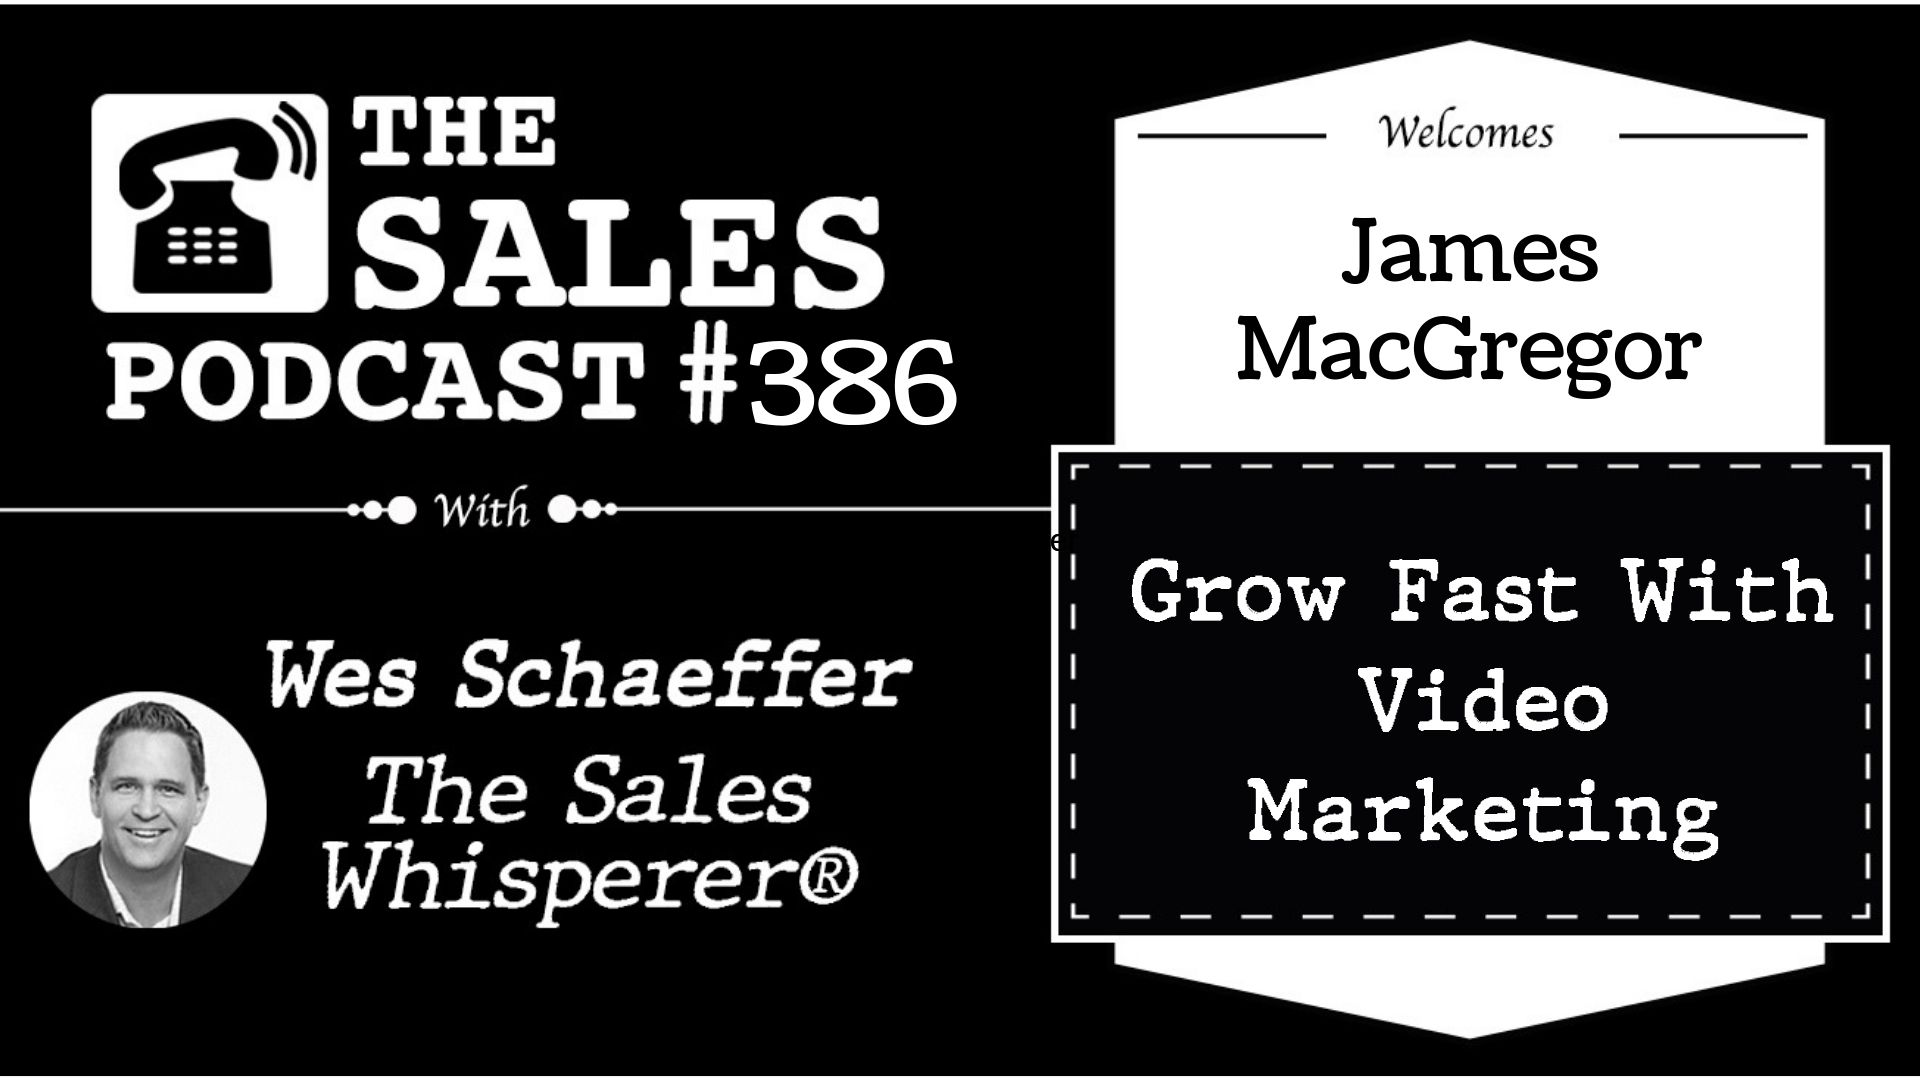 James MacGregor Landed 4.4 Million New Users In Under 5 Years